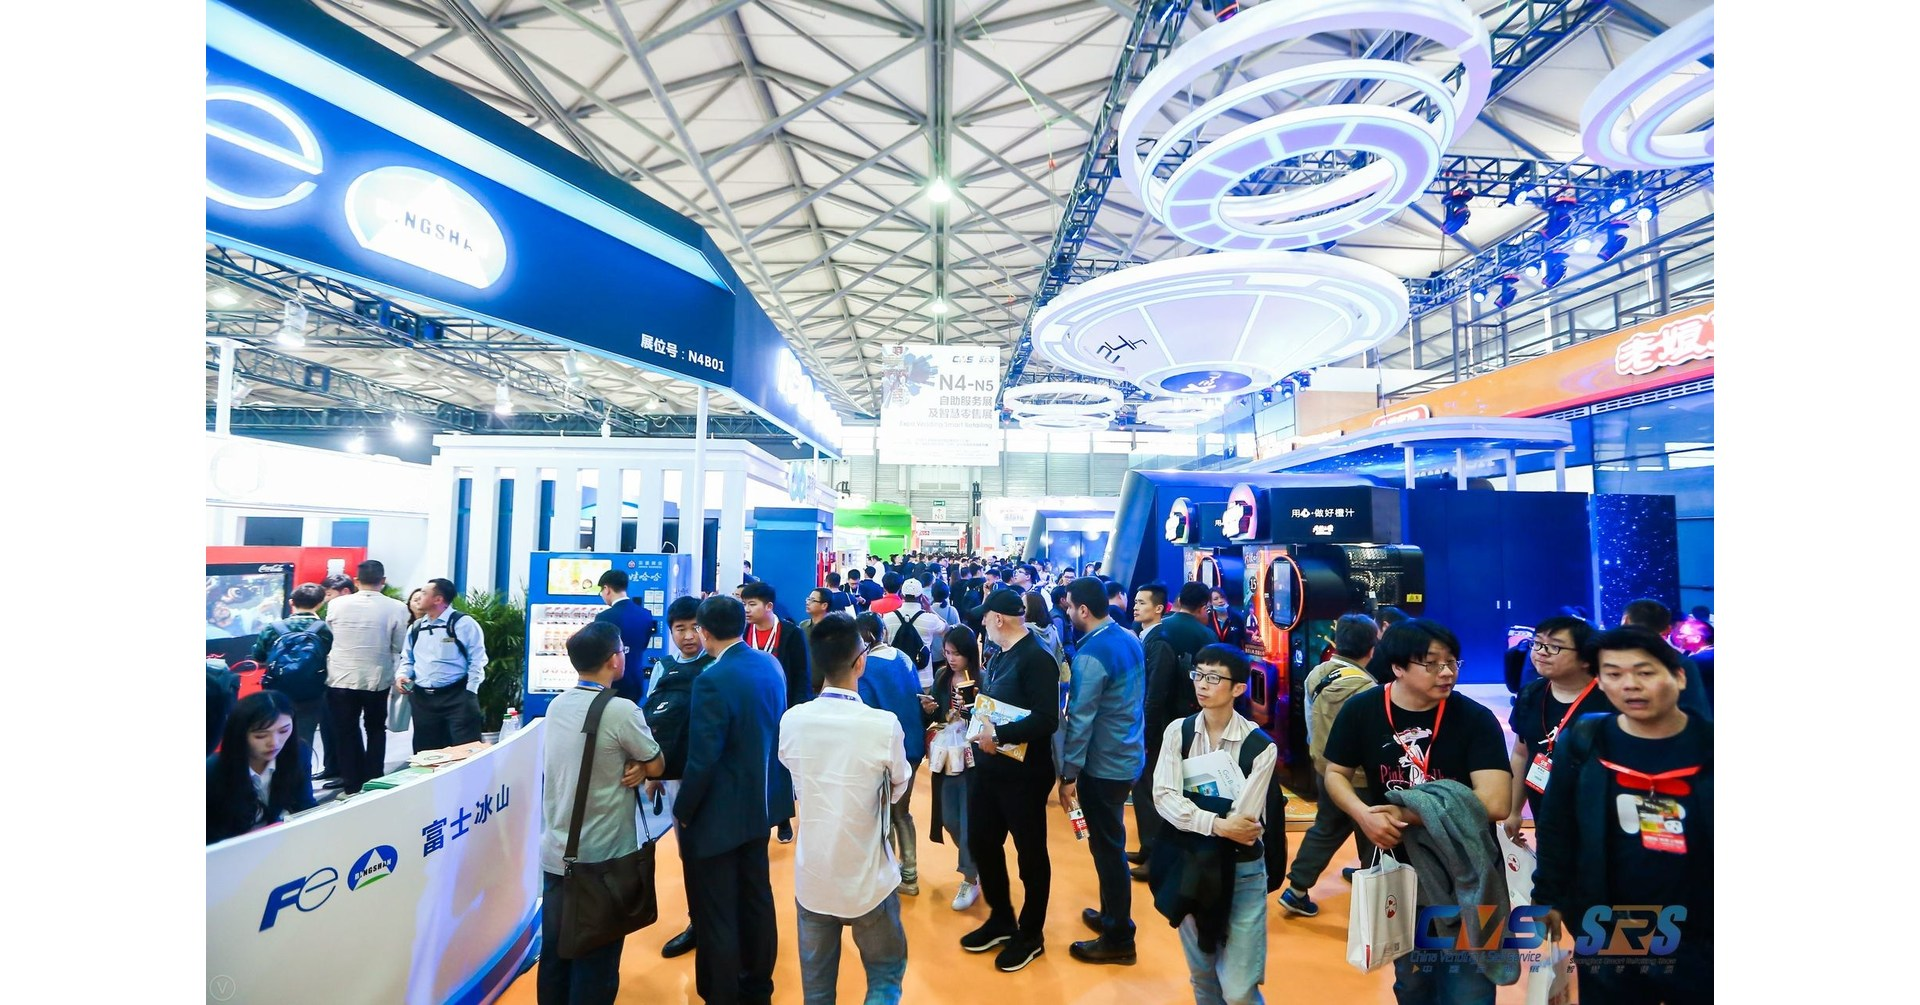 The 16th China International Self-service, Kiosk and Vending Show (CVS2019) to bring together everything for vending needs under one roof